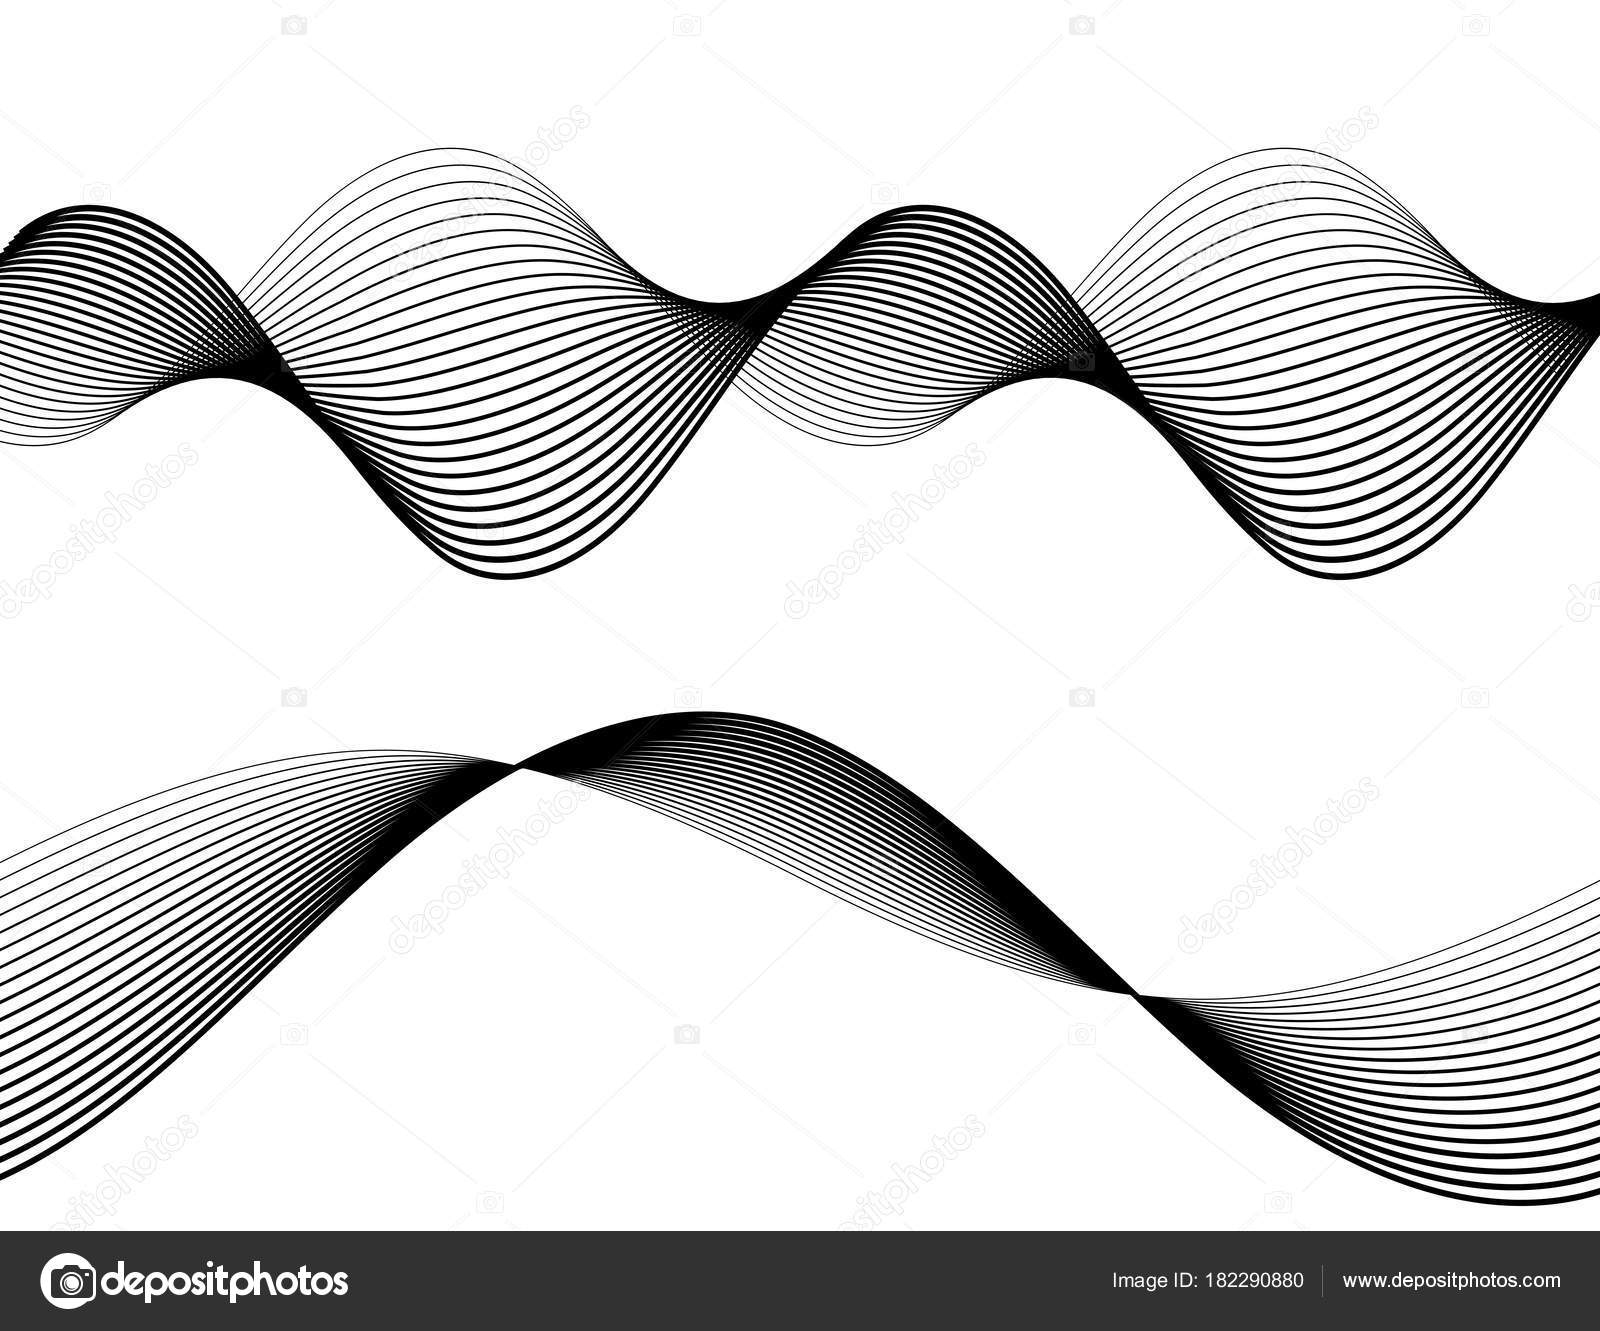 Line The Art Element : Design element wave many parallel lines wavy from thin to thick0